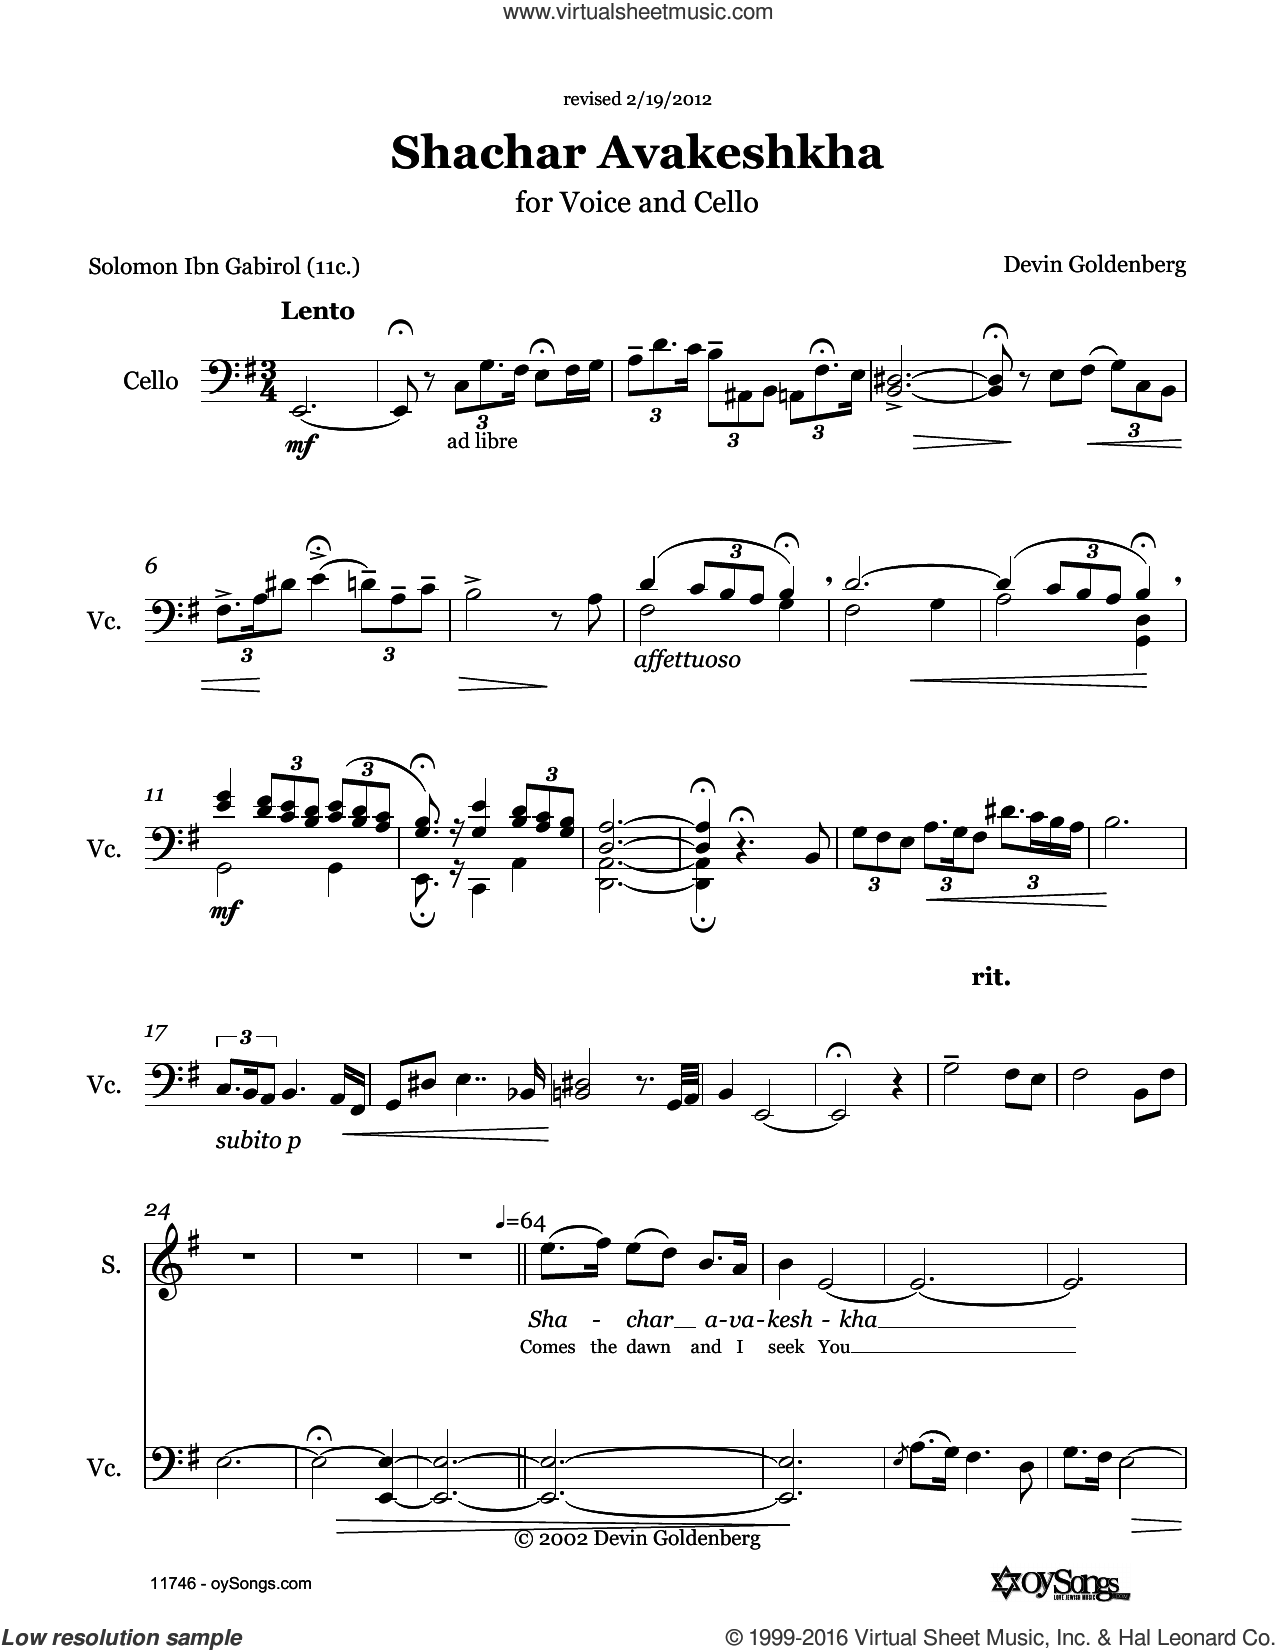 Shachar Avakeshcha sheet music for choir and piano (voice) by Devin Goldenberg